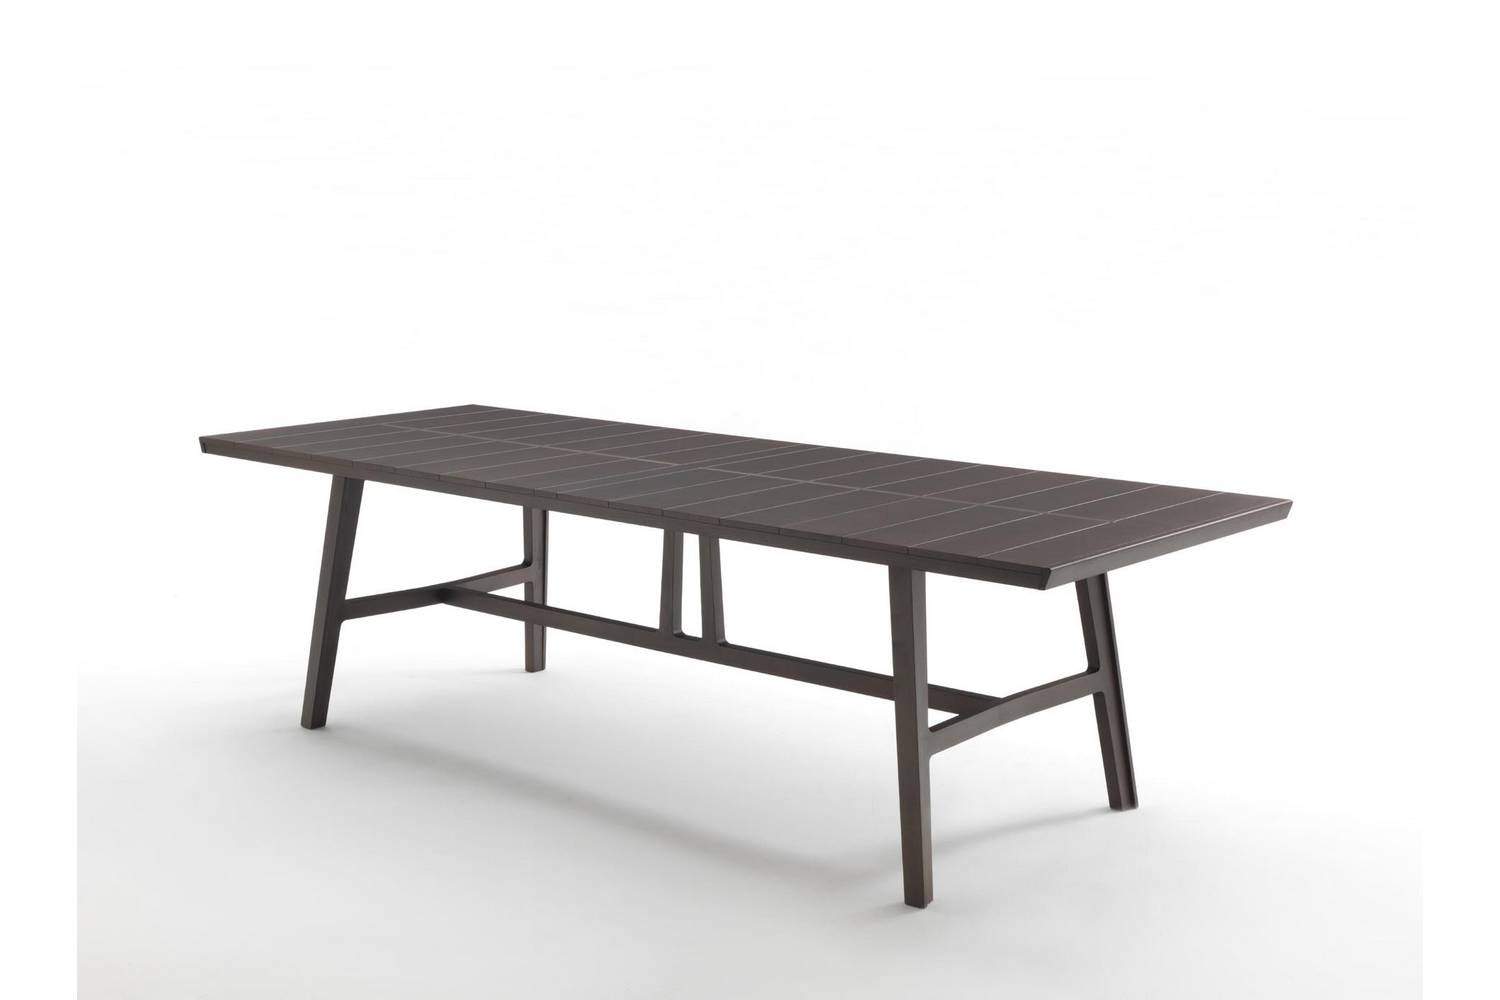 Desco Table by Umberto Asnago for Porada